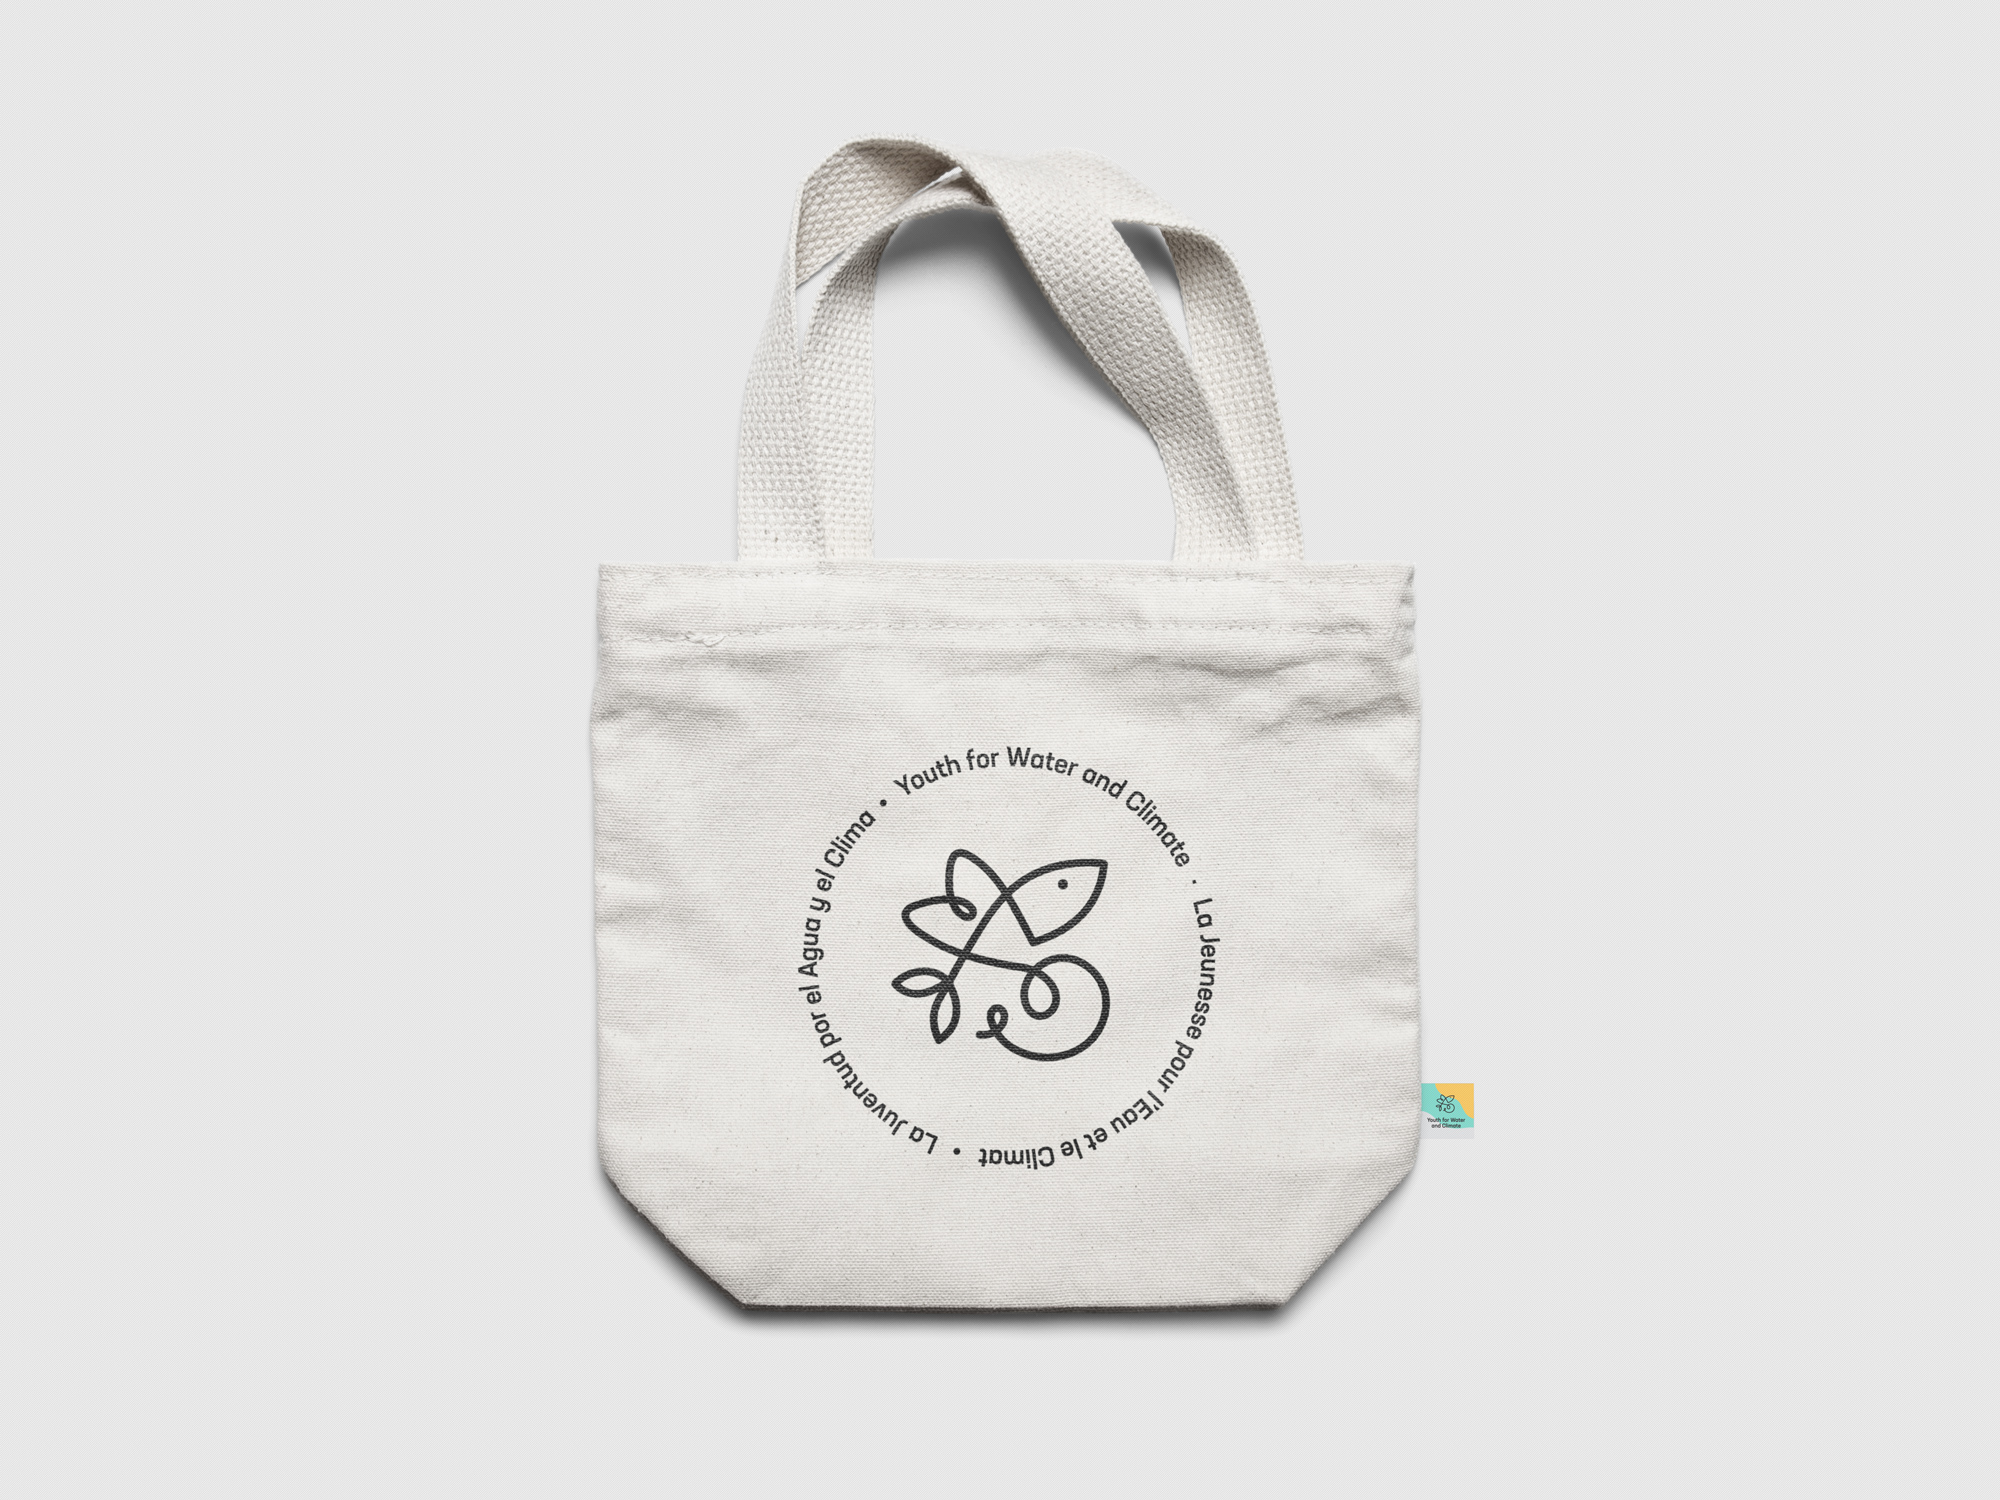 YWC_Small-Canvas-Tote-Bag-MockUp_site.jpg